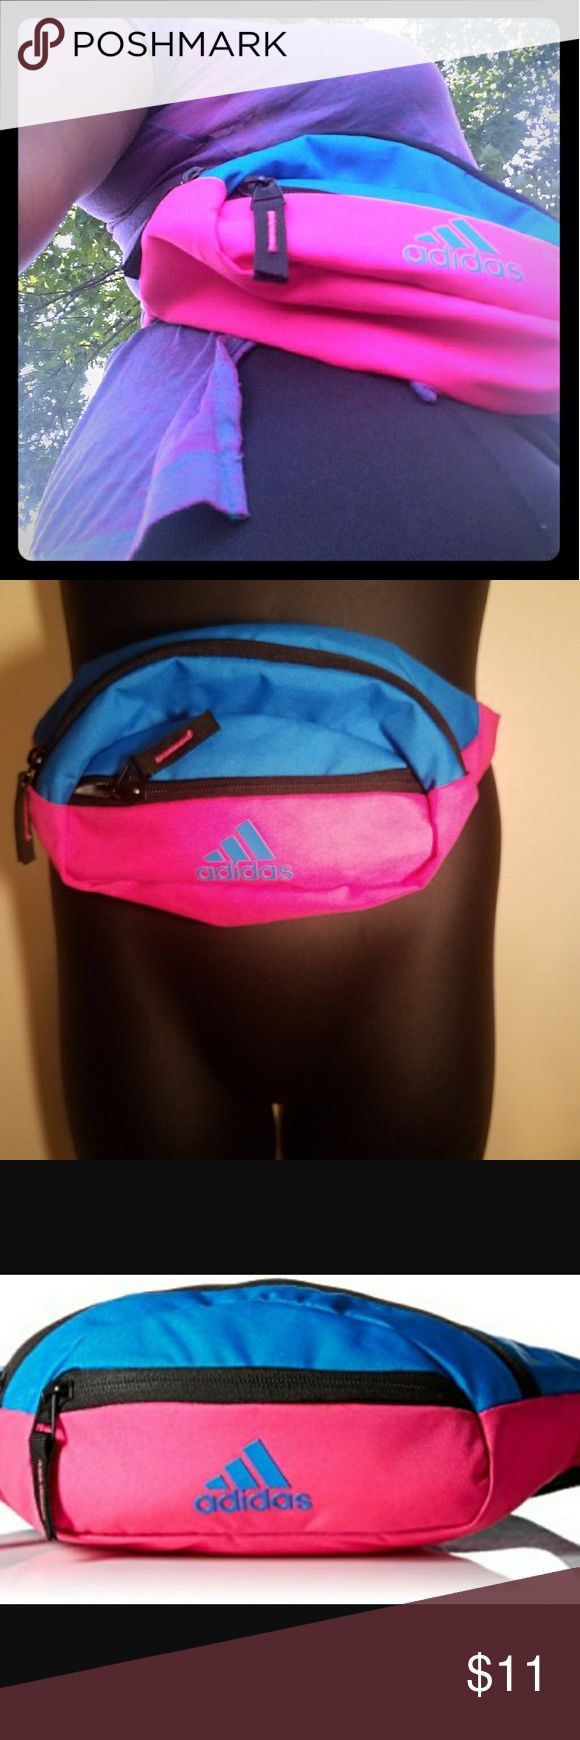 Adidas Fanny Pack Nice size fanny pack. Rarely used. adidas Bags Mini Bags